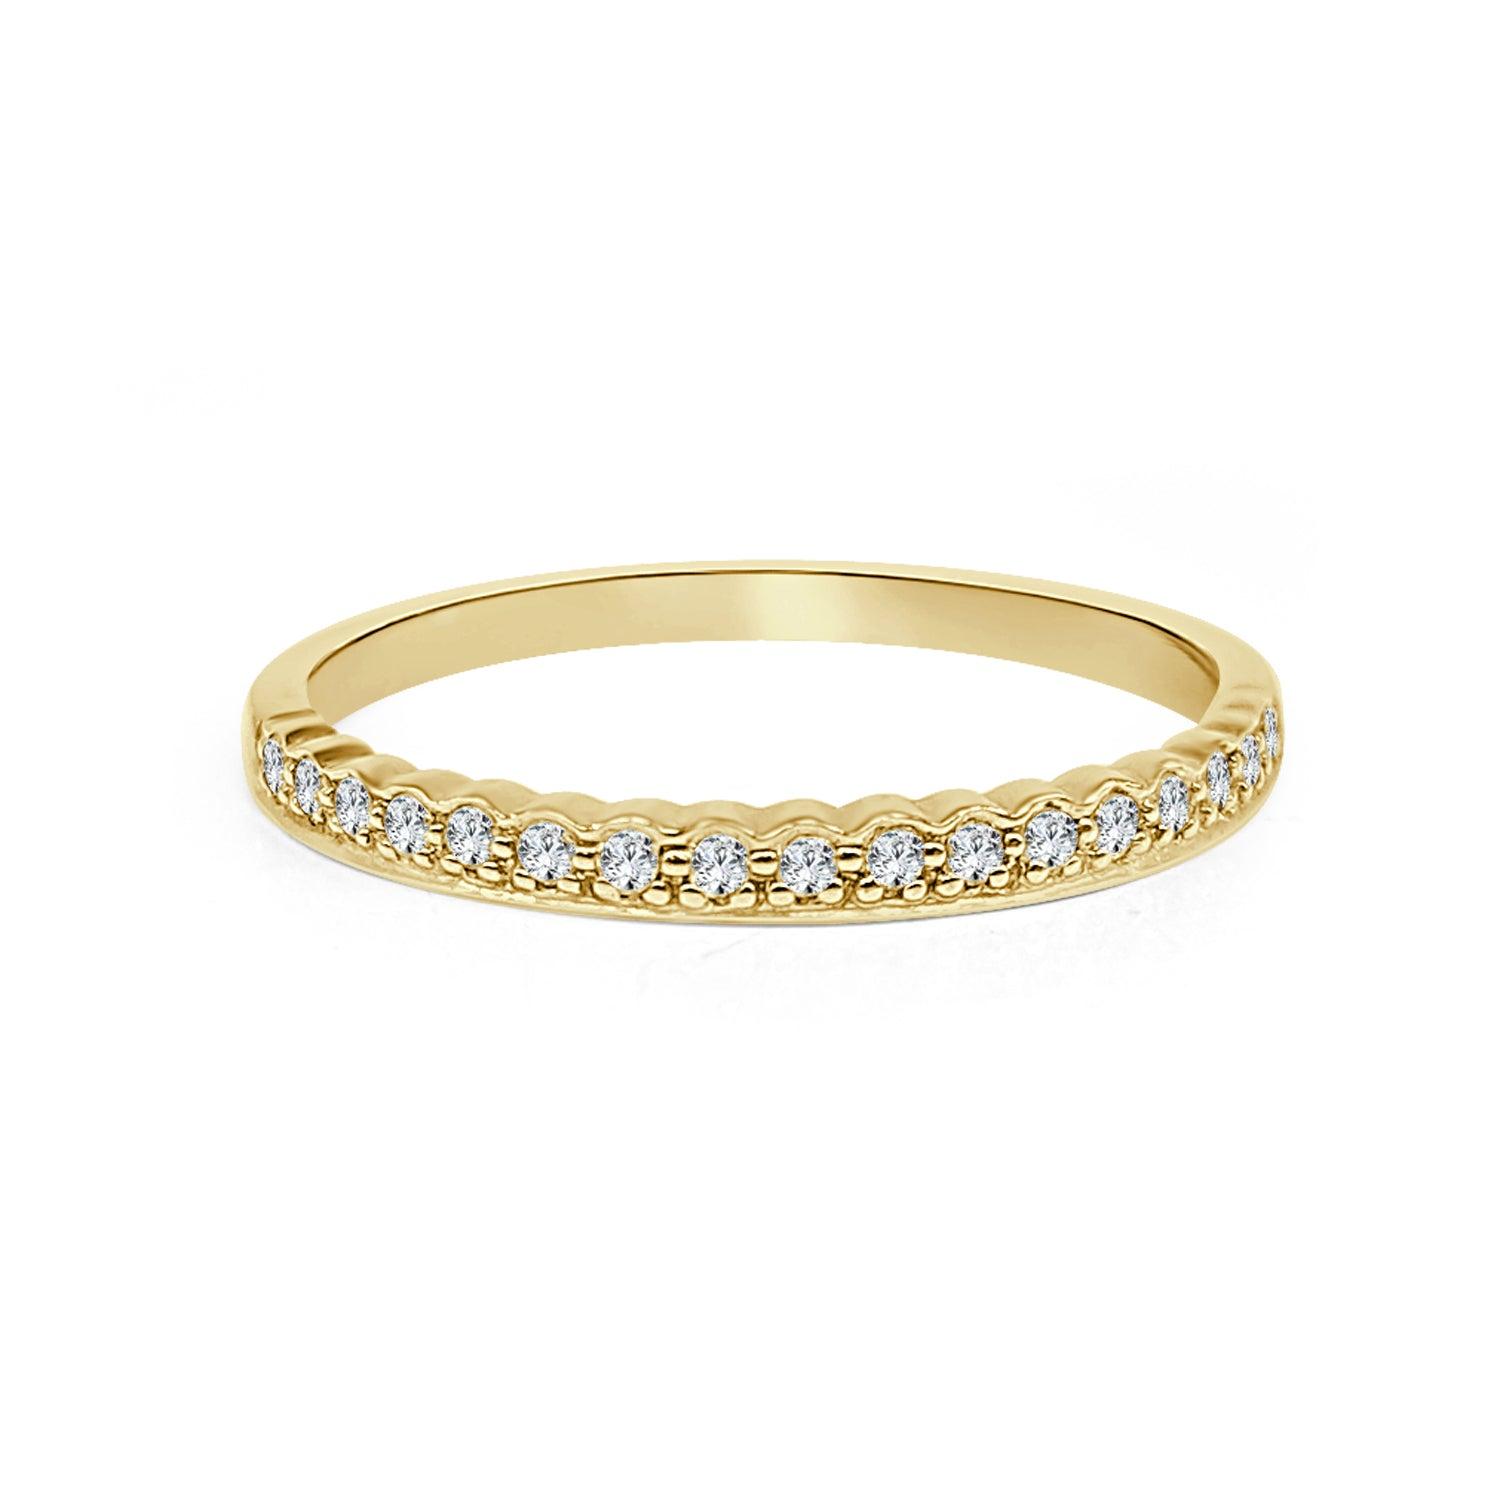 10 Karat Yellow Gold 0.13 Carat Diamond Stackable Diamond Ring